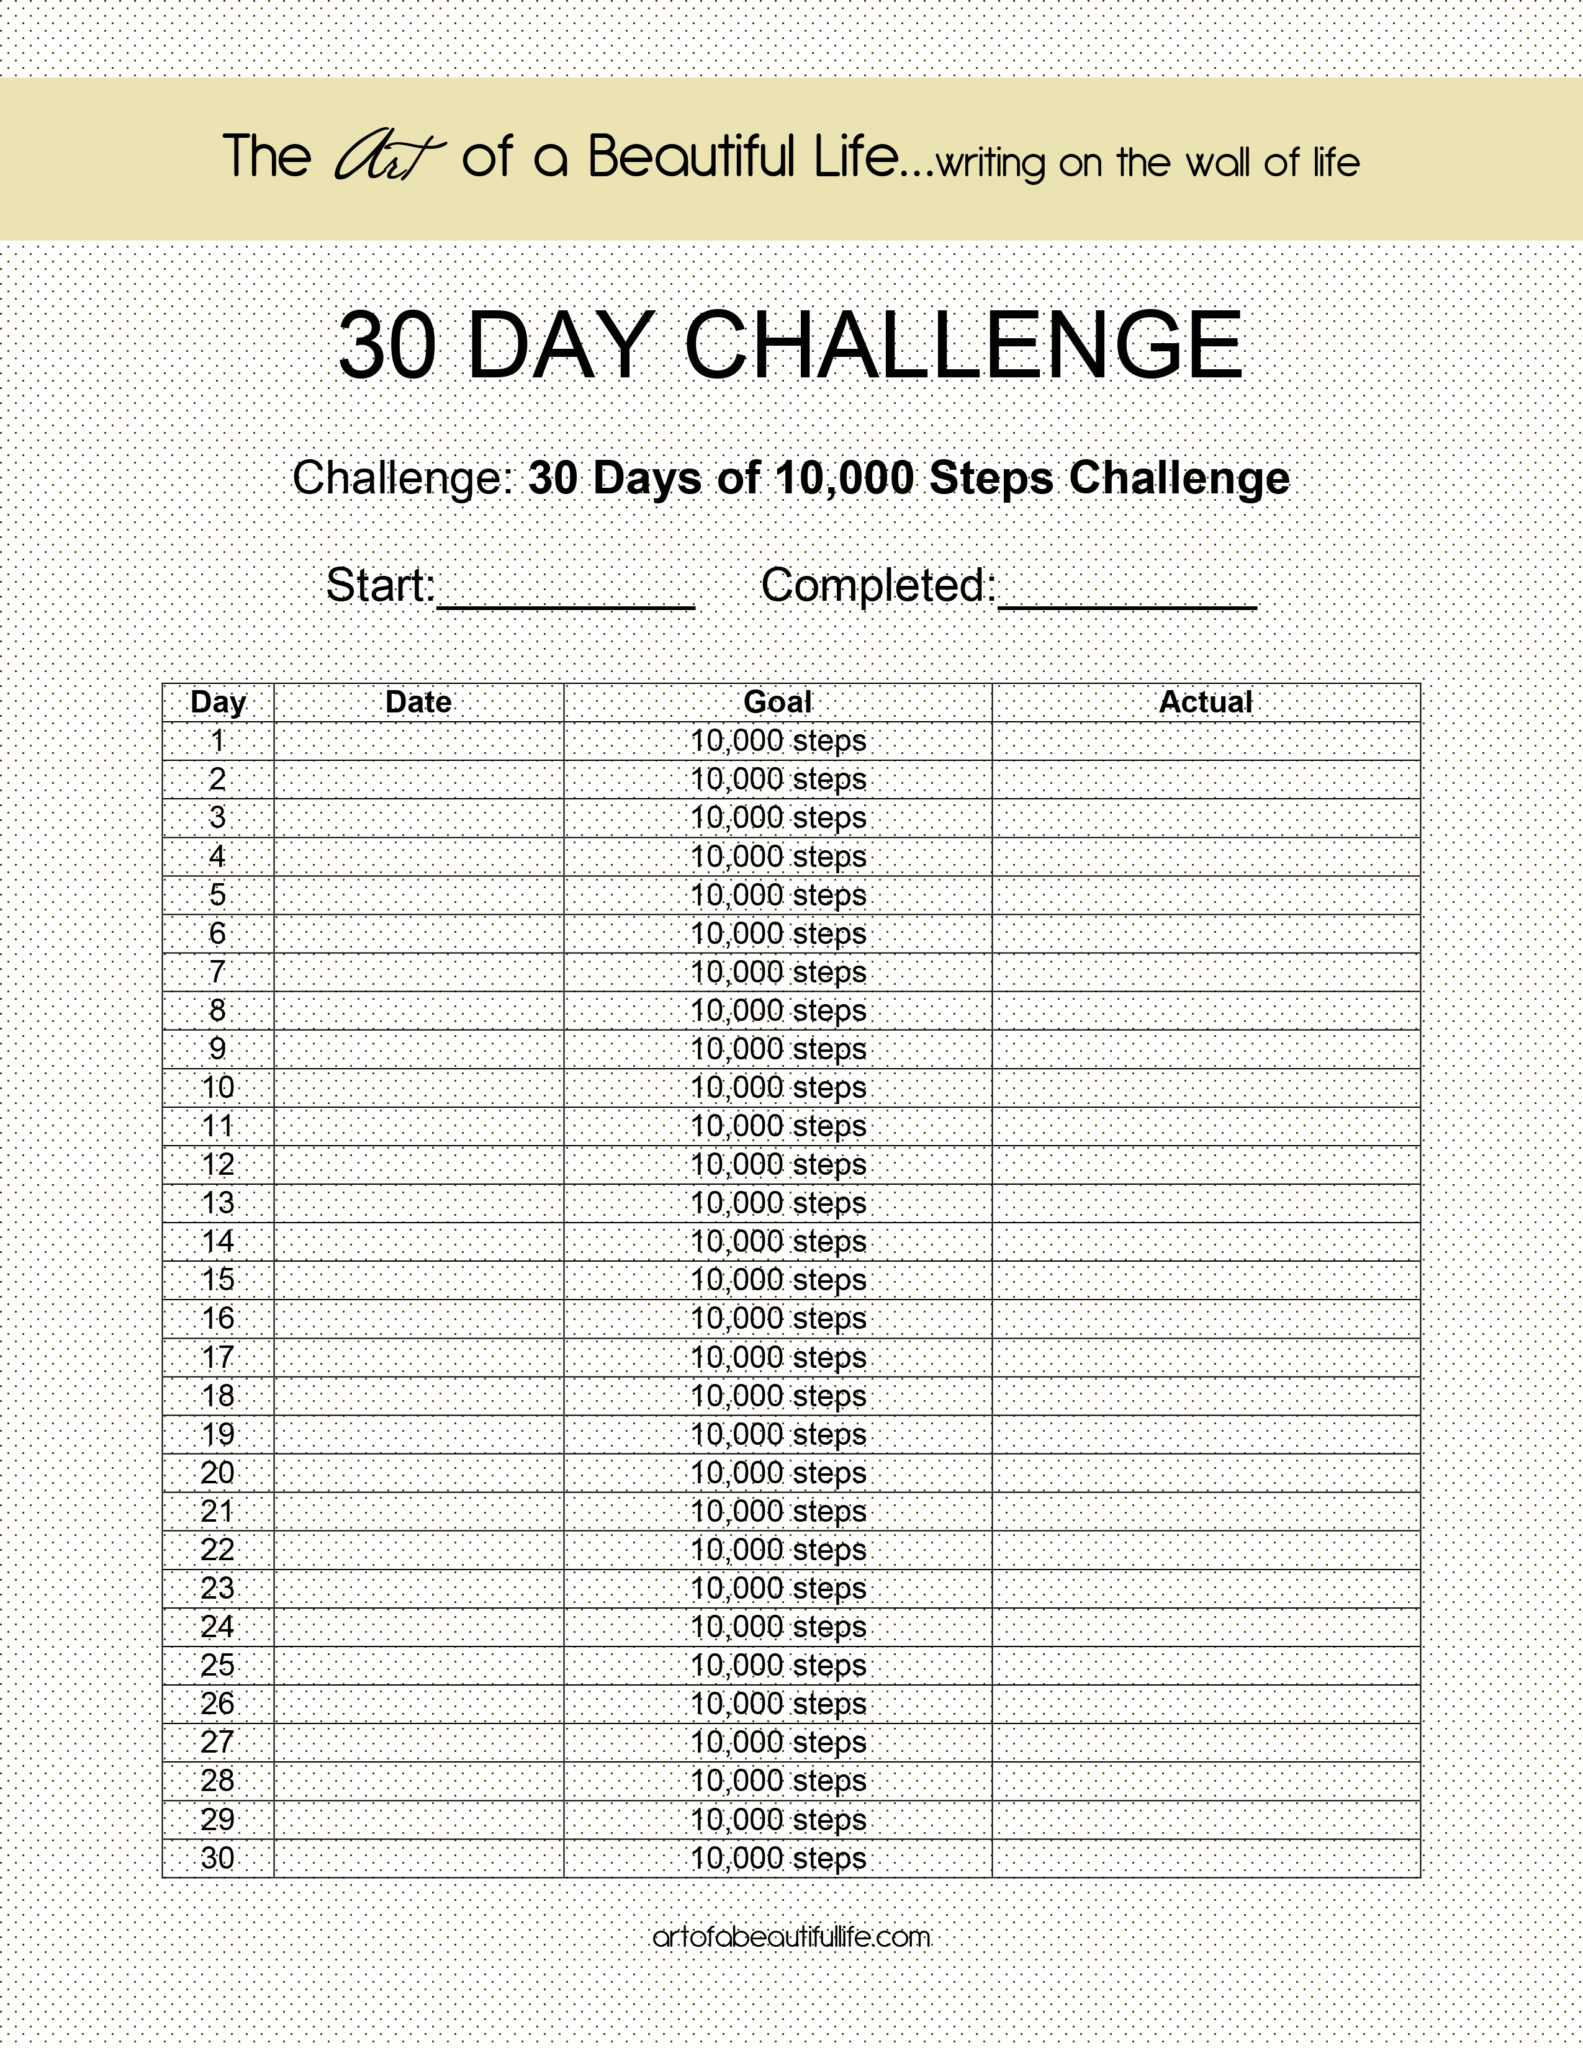 30 DAY CHALLENGE - 10,000 STEPS - The Art of a Beautiful Life